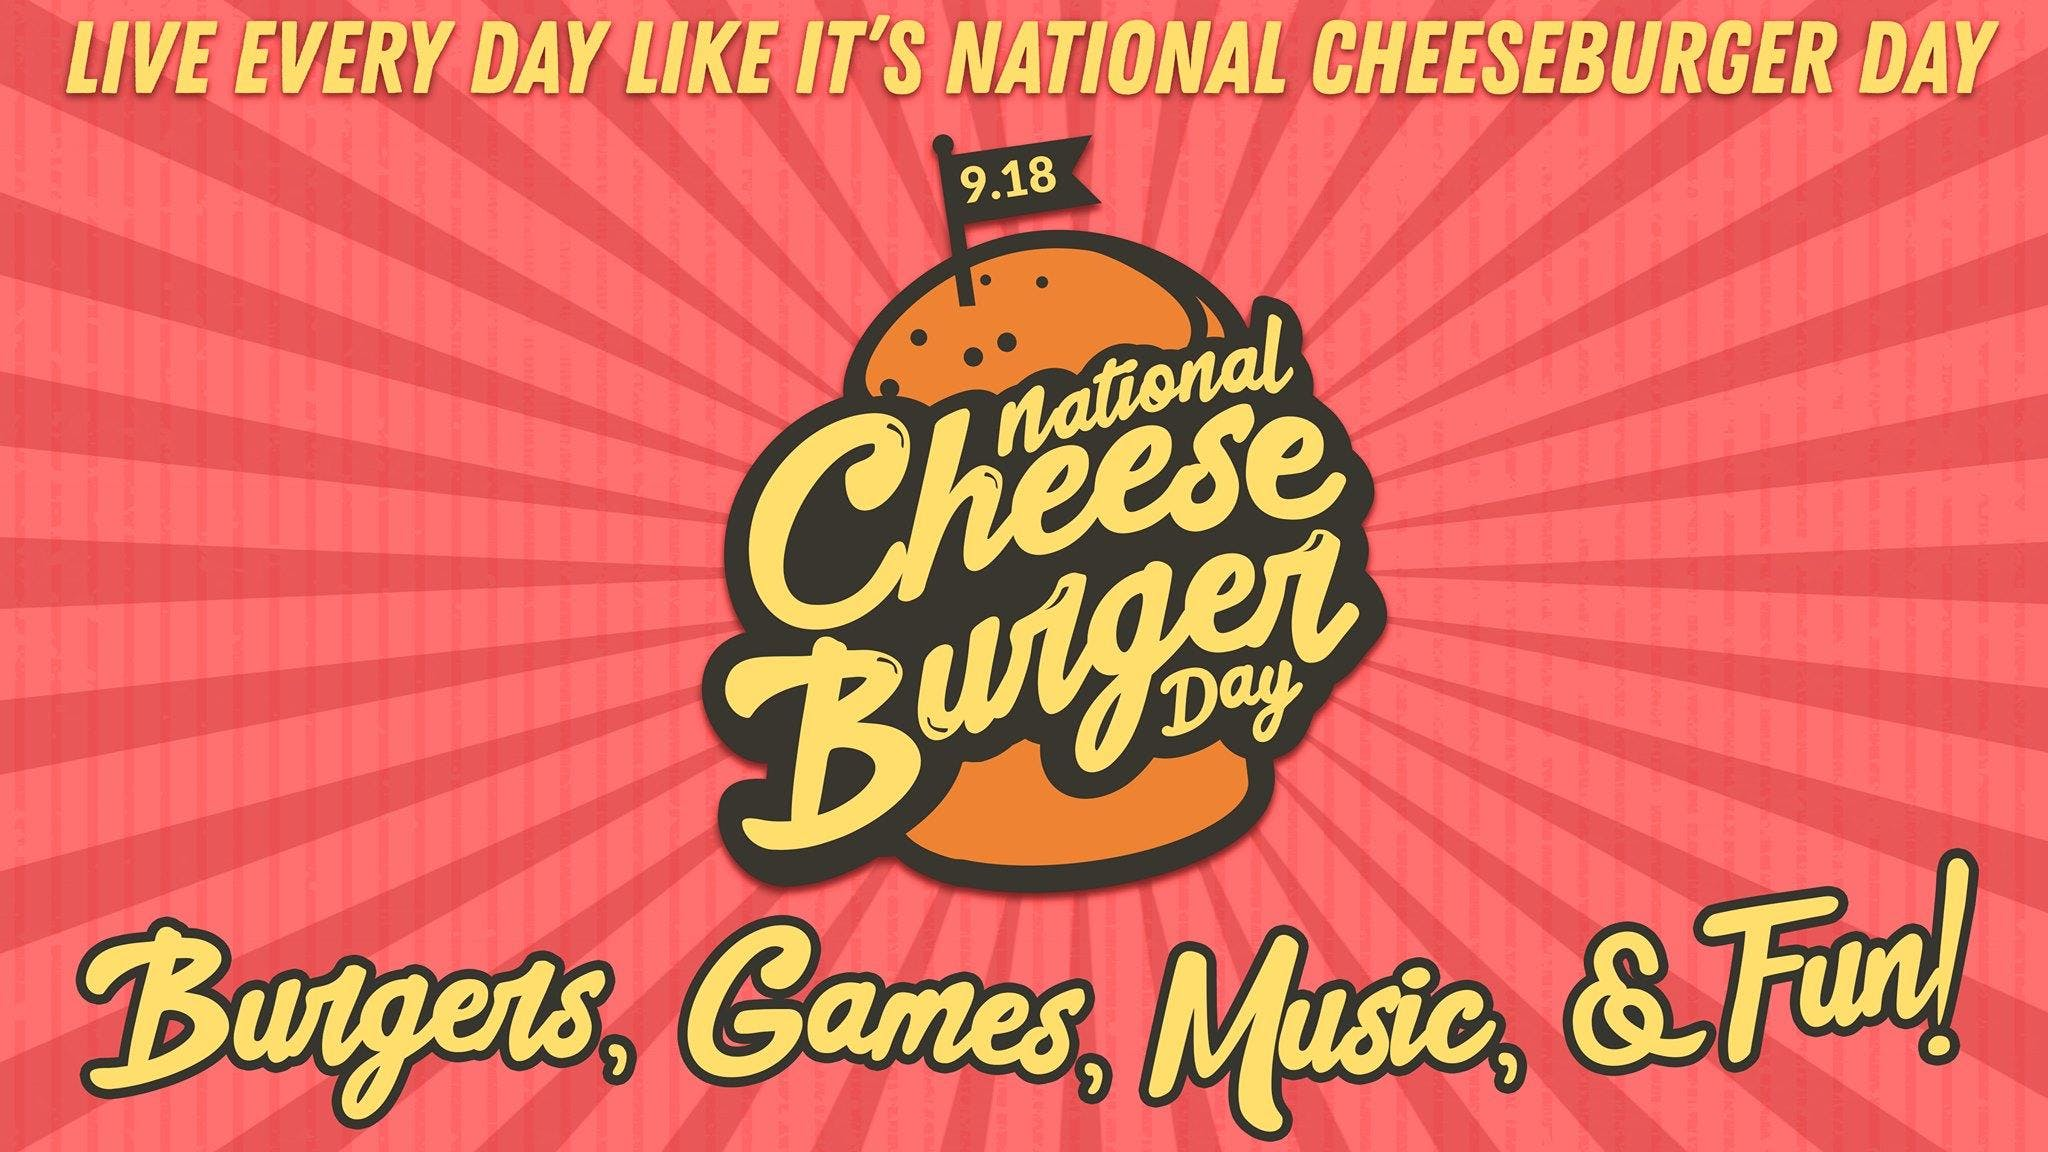 National Cheeseburger Day Celebration